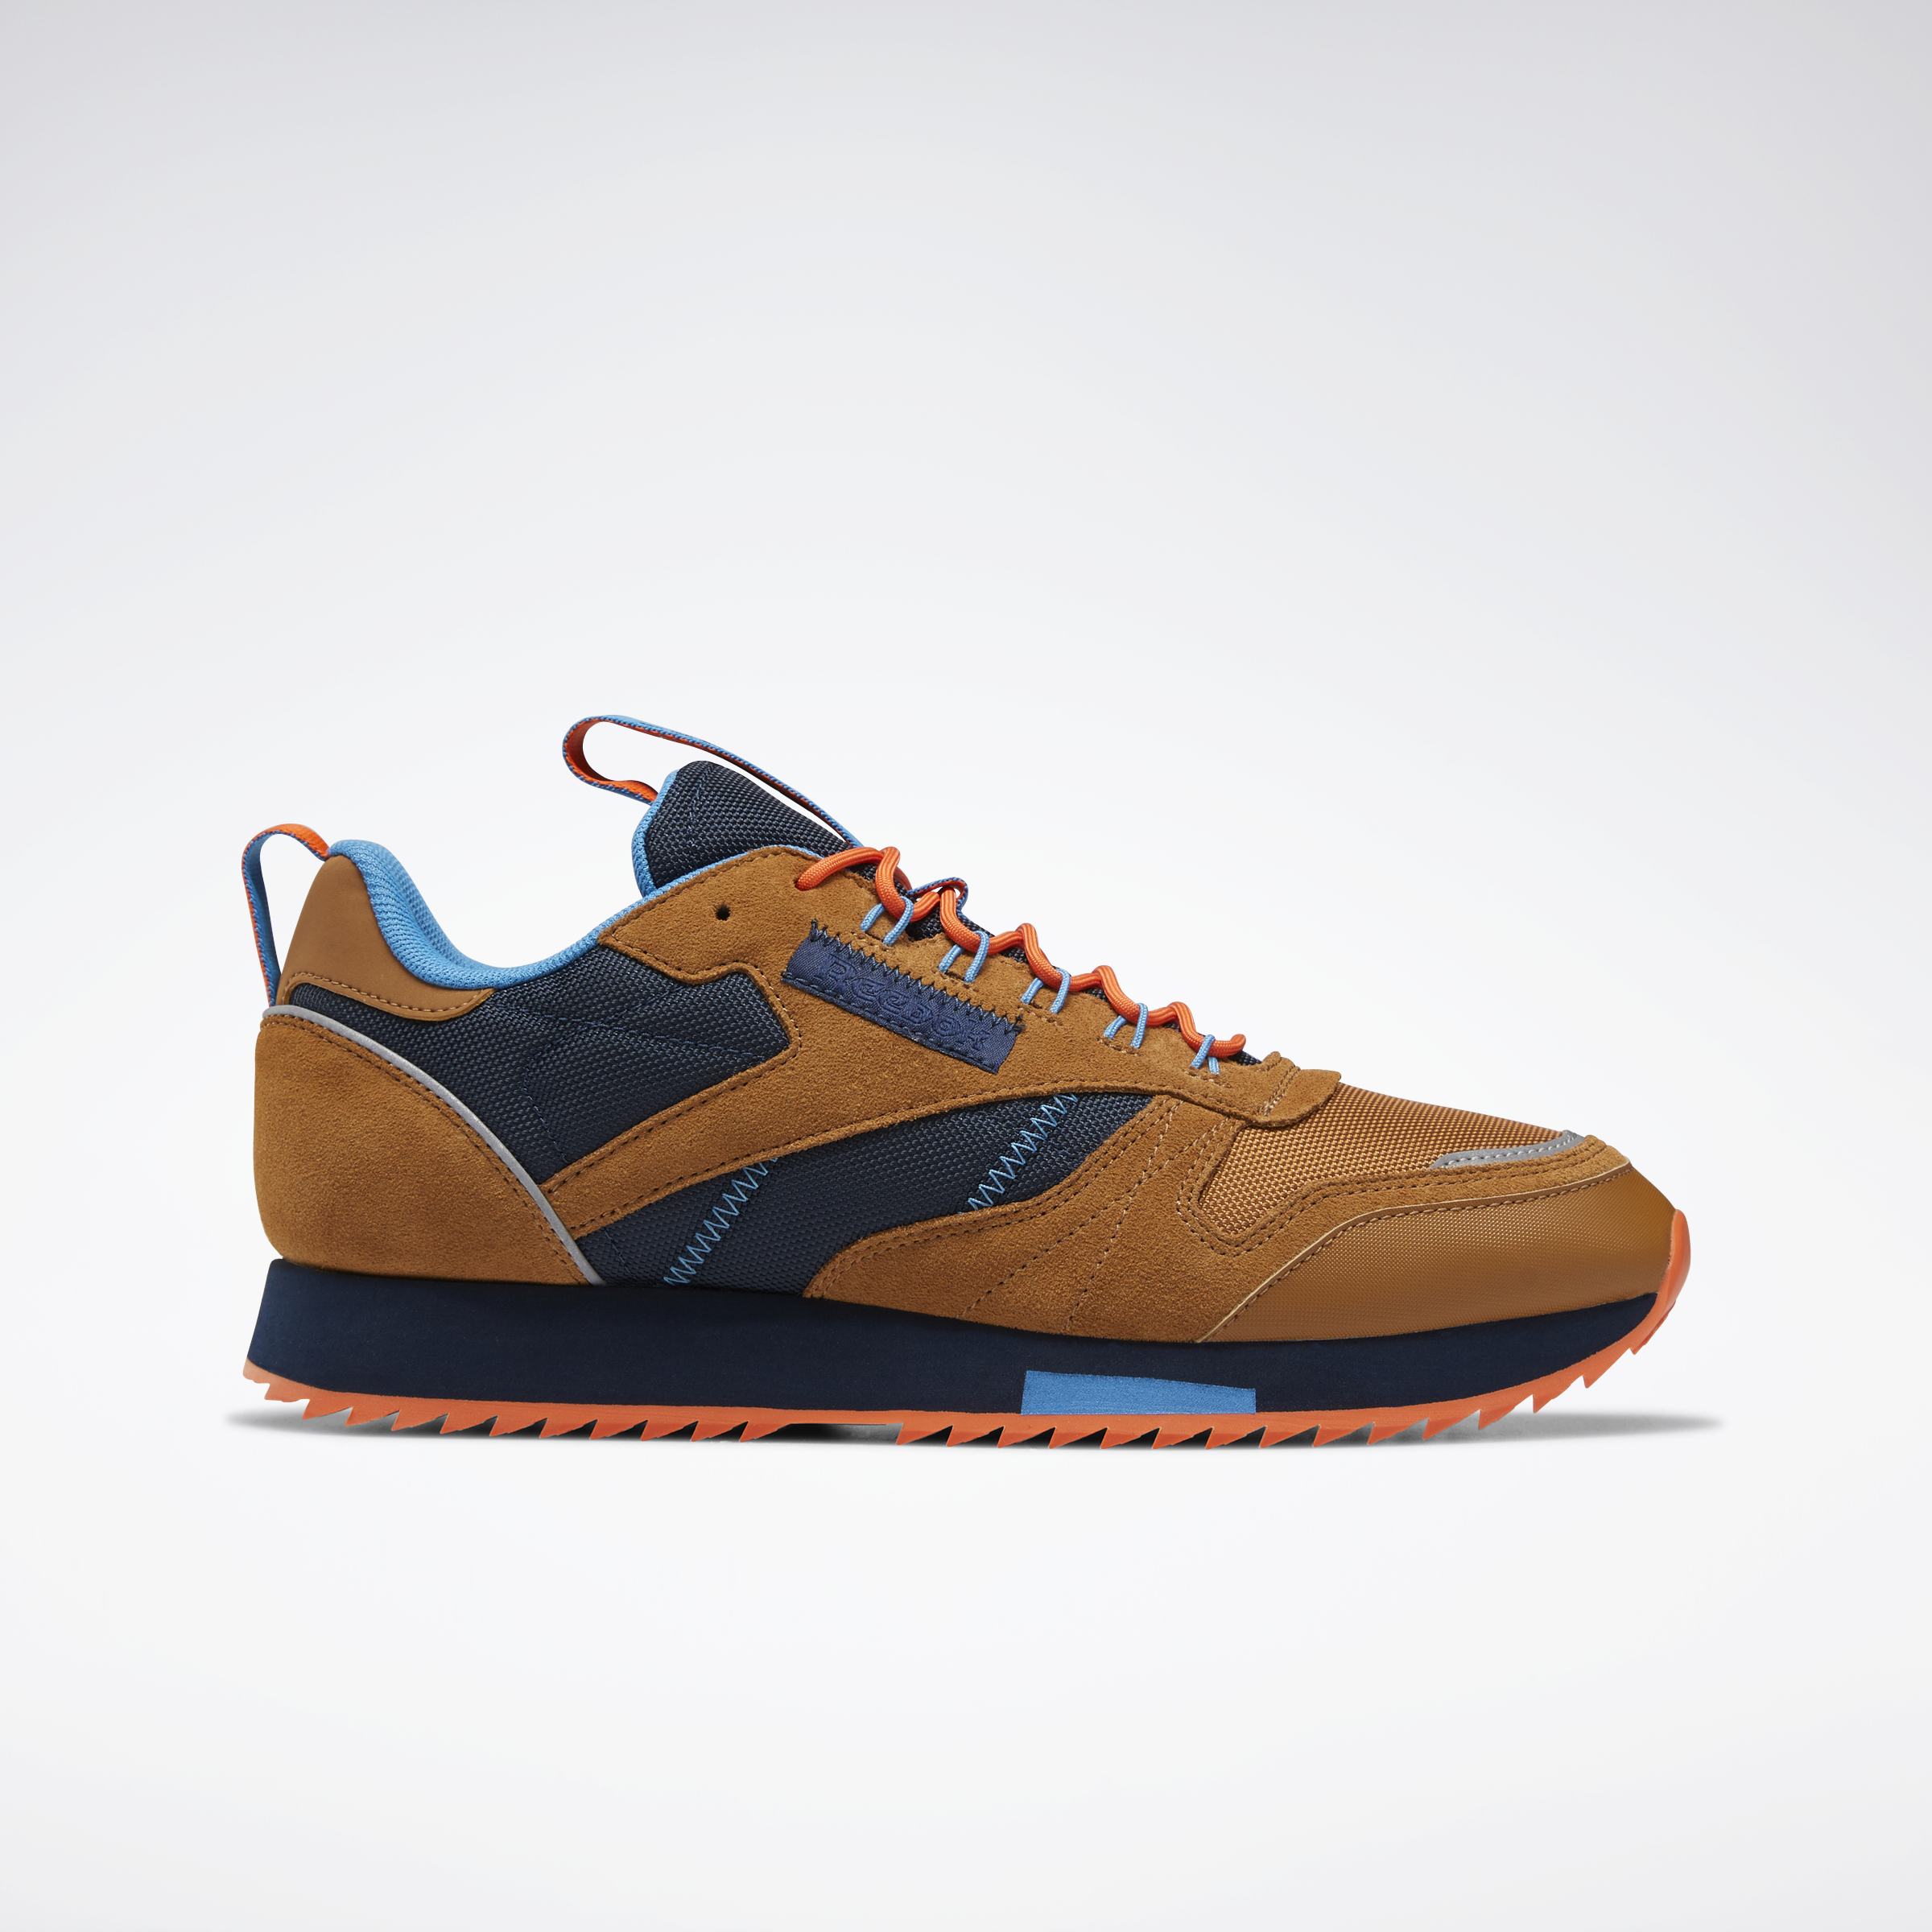 Reebok-Classic-Leather-Ripple-Trail-Men-039-s-Shoes thumbnail 16